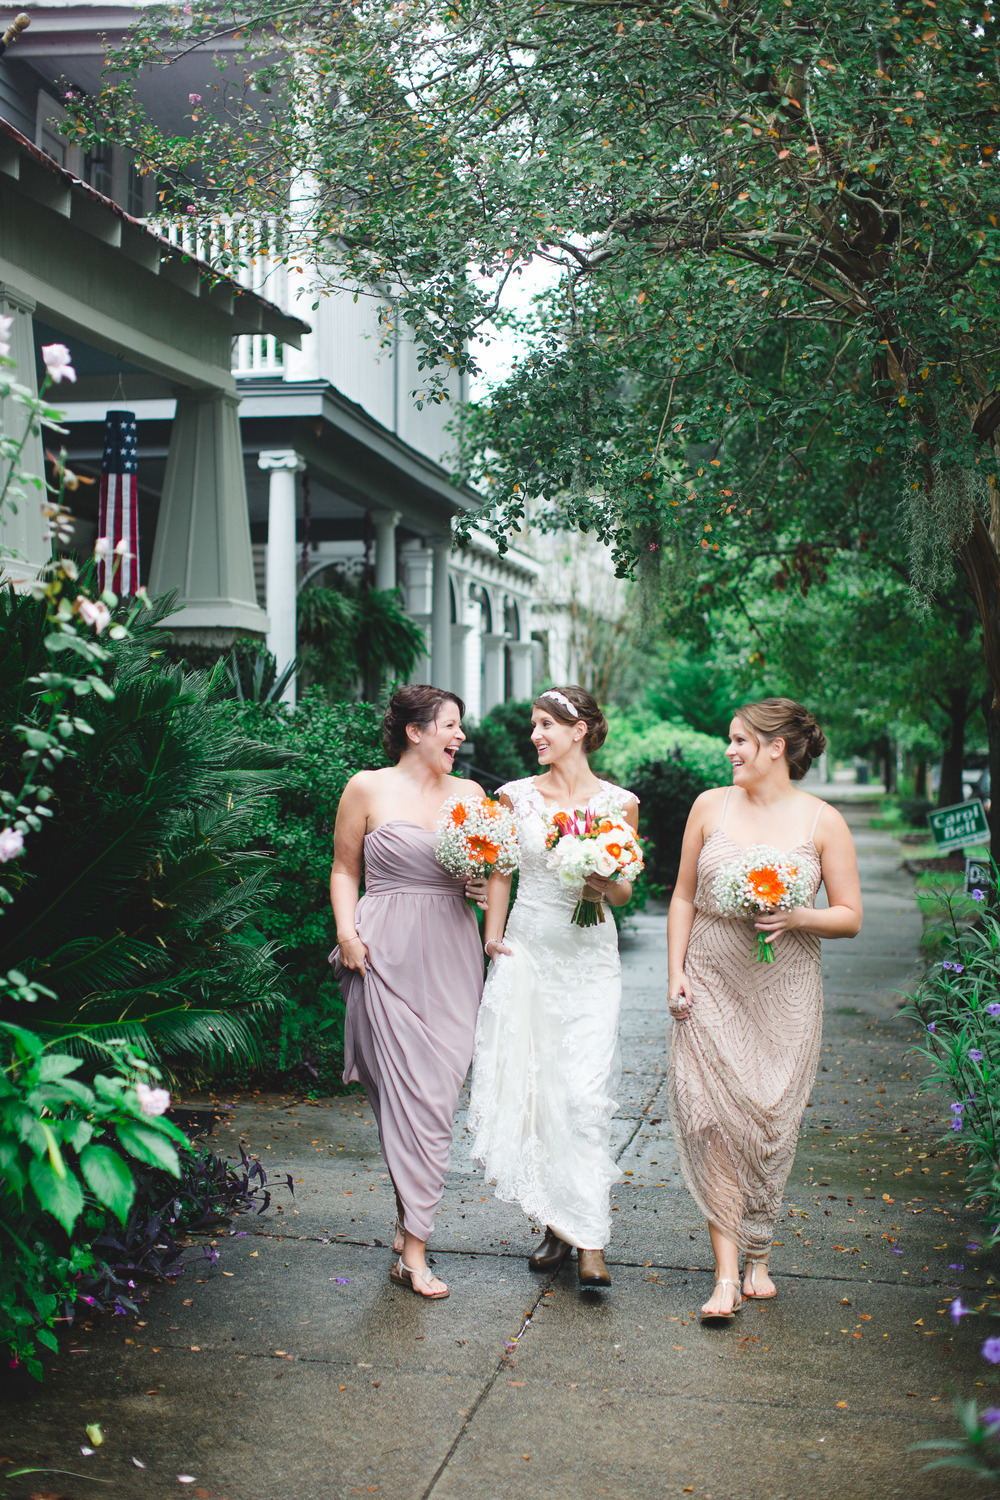 izzy-hudgins-photography-ivory-and-beau-bridal-boutique-savannah-wedding-planner-savannah-wedding-planning-old-fort-jackson-wedding-historic-wedding-savannah-wedding-florist-rustic-bohemian-wedding-savannah-wedding-savannah-weddings-15.jpg